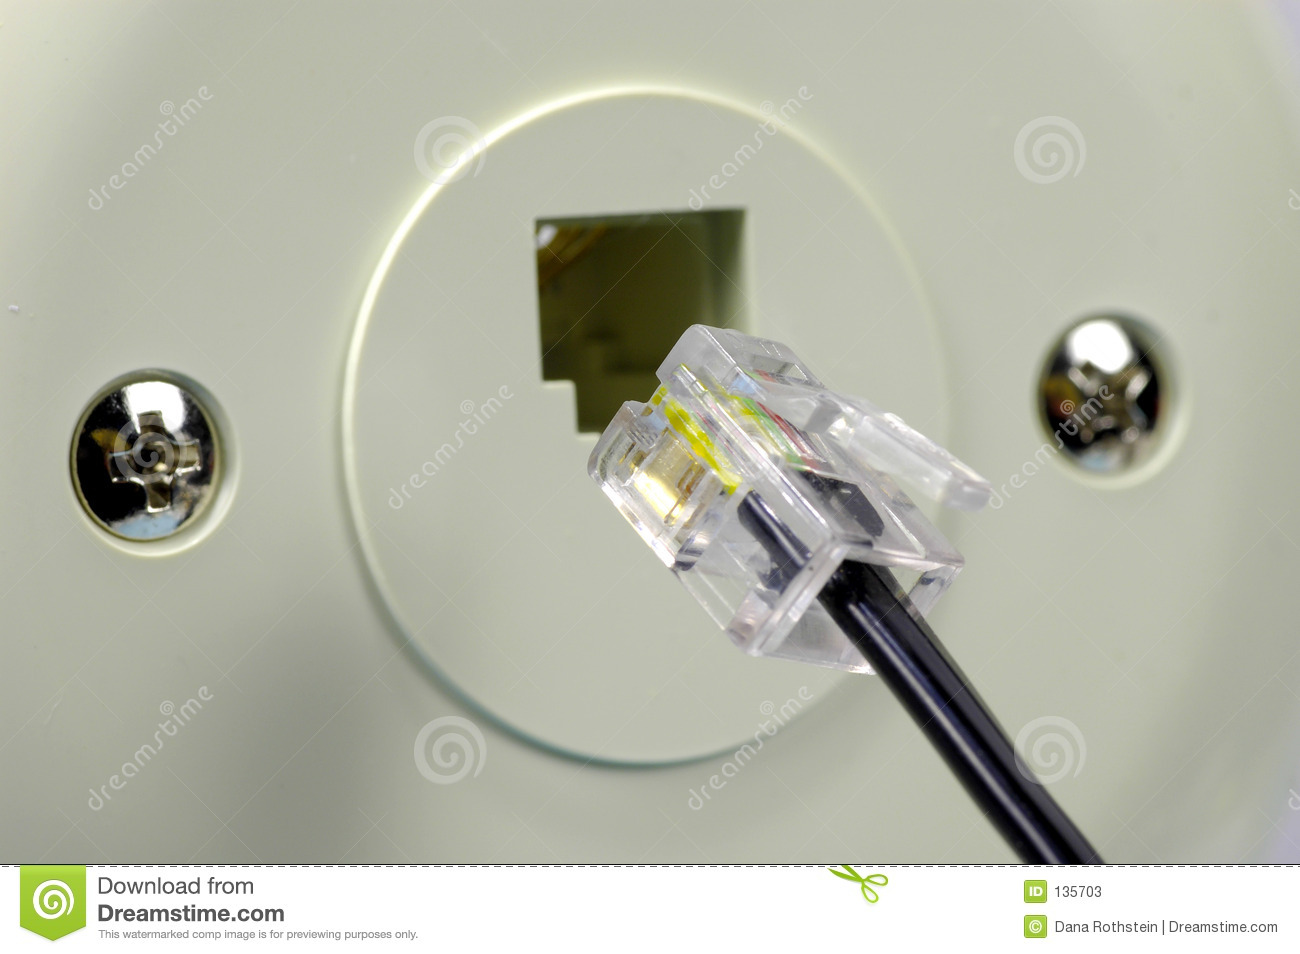 electrical socket wire diagram socket breaker wire diagram two telephone jack stock photos image 135703 #10